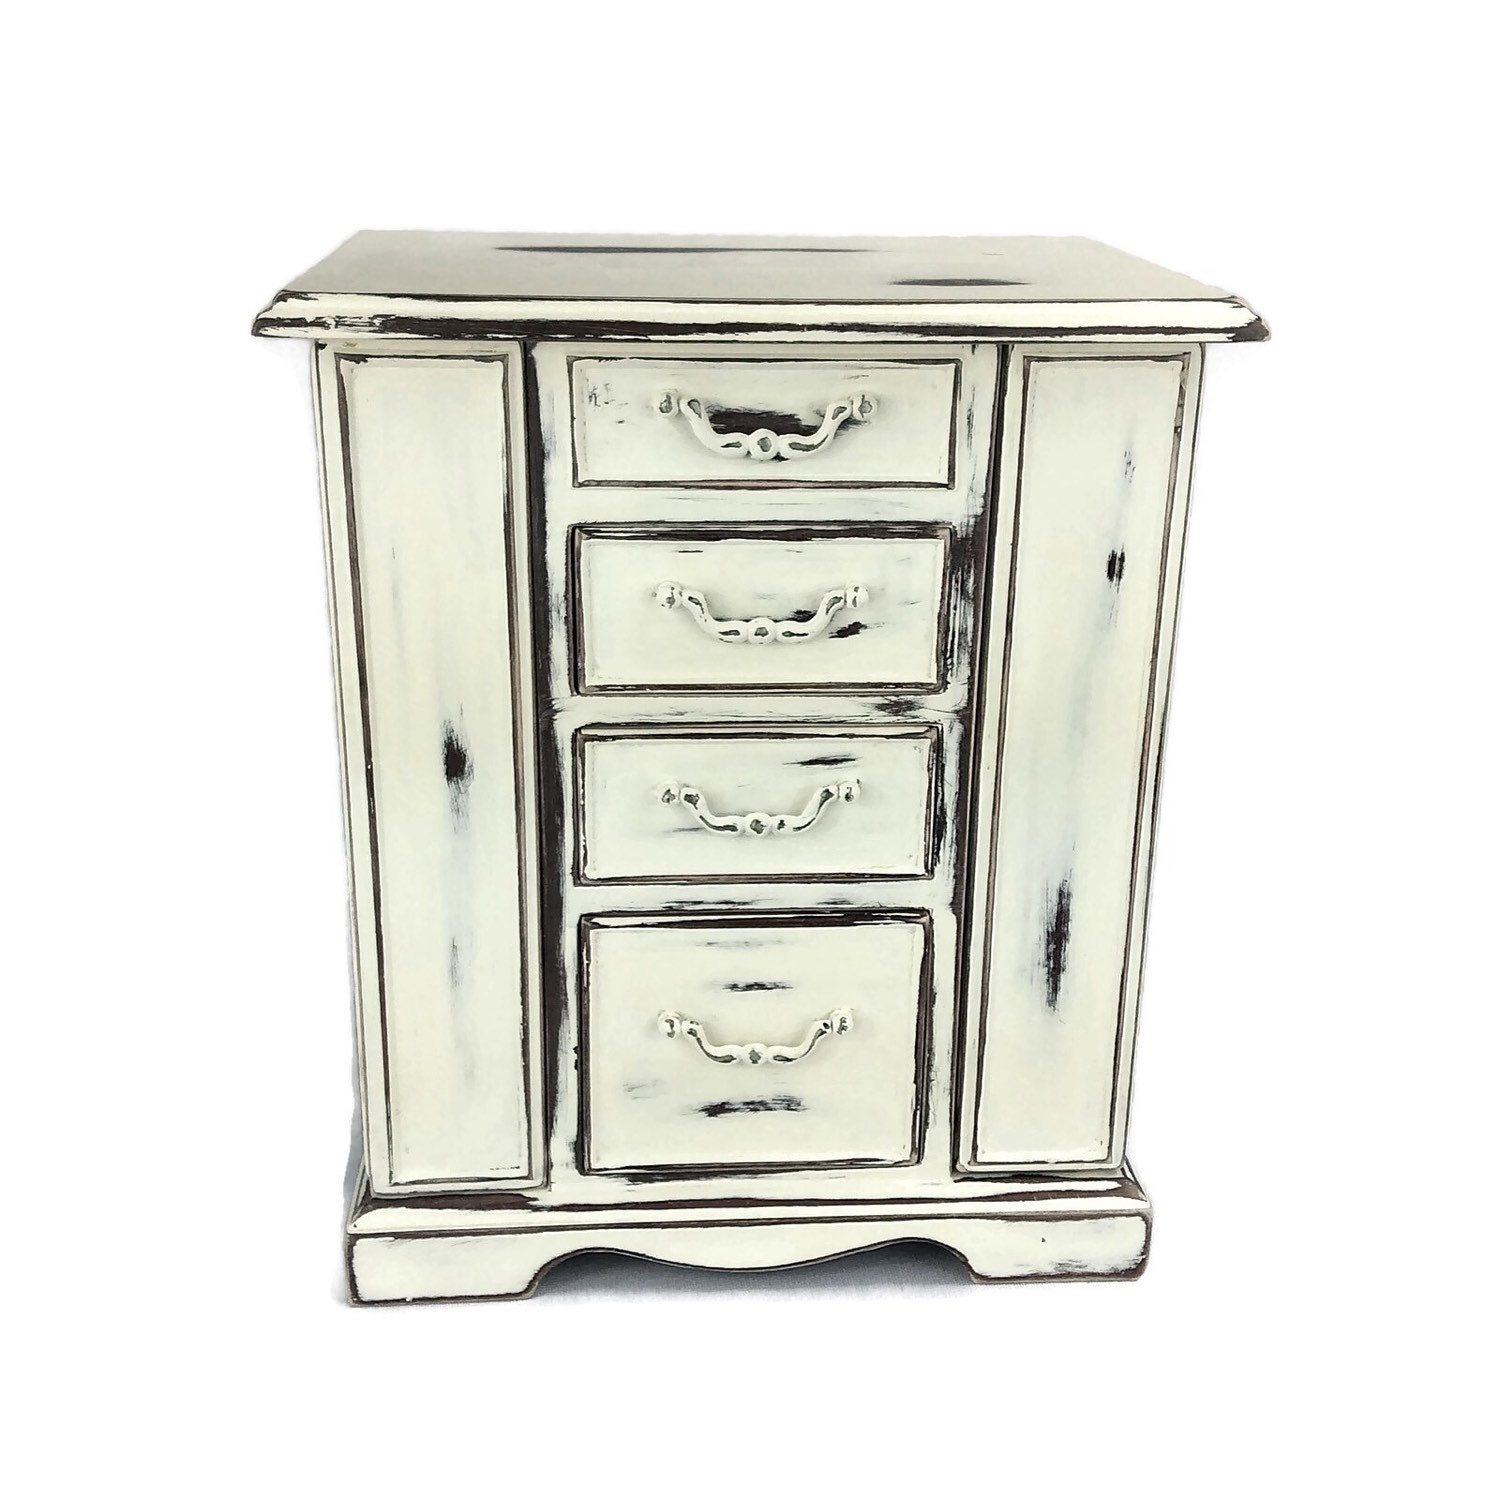 jewelry box white jewelry armoire rustic jewelry organizer. Black Bedroom Furniture Sets. Home Design Ideas